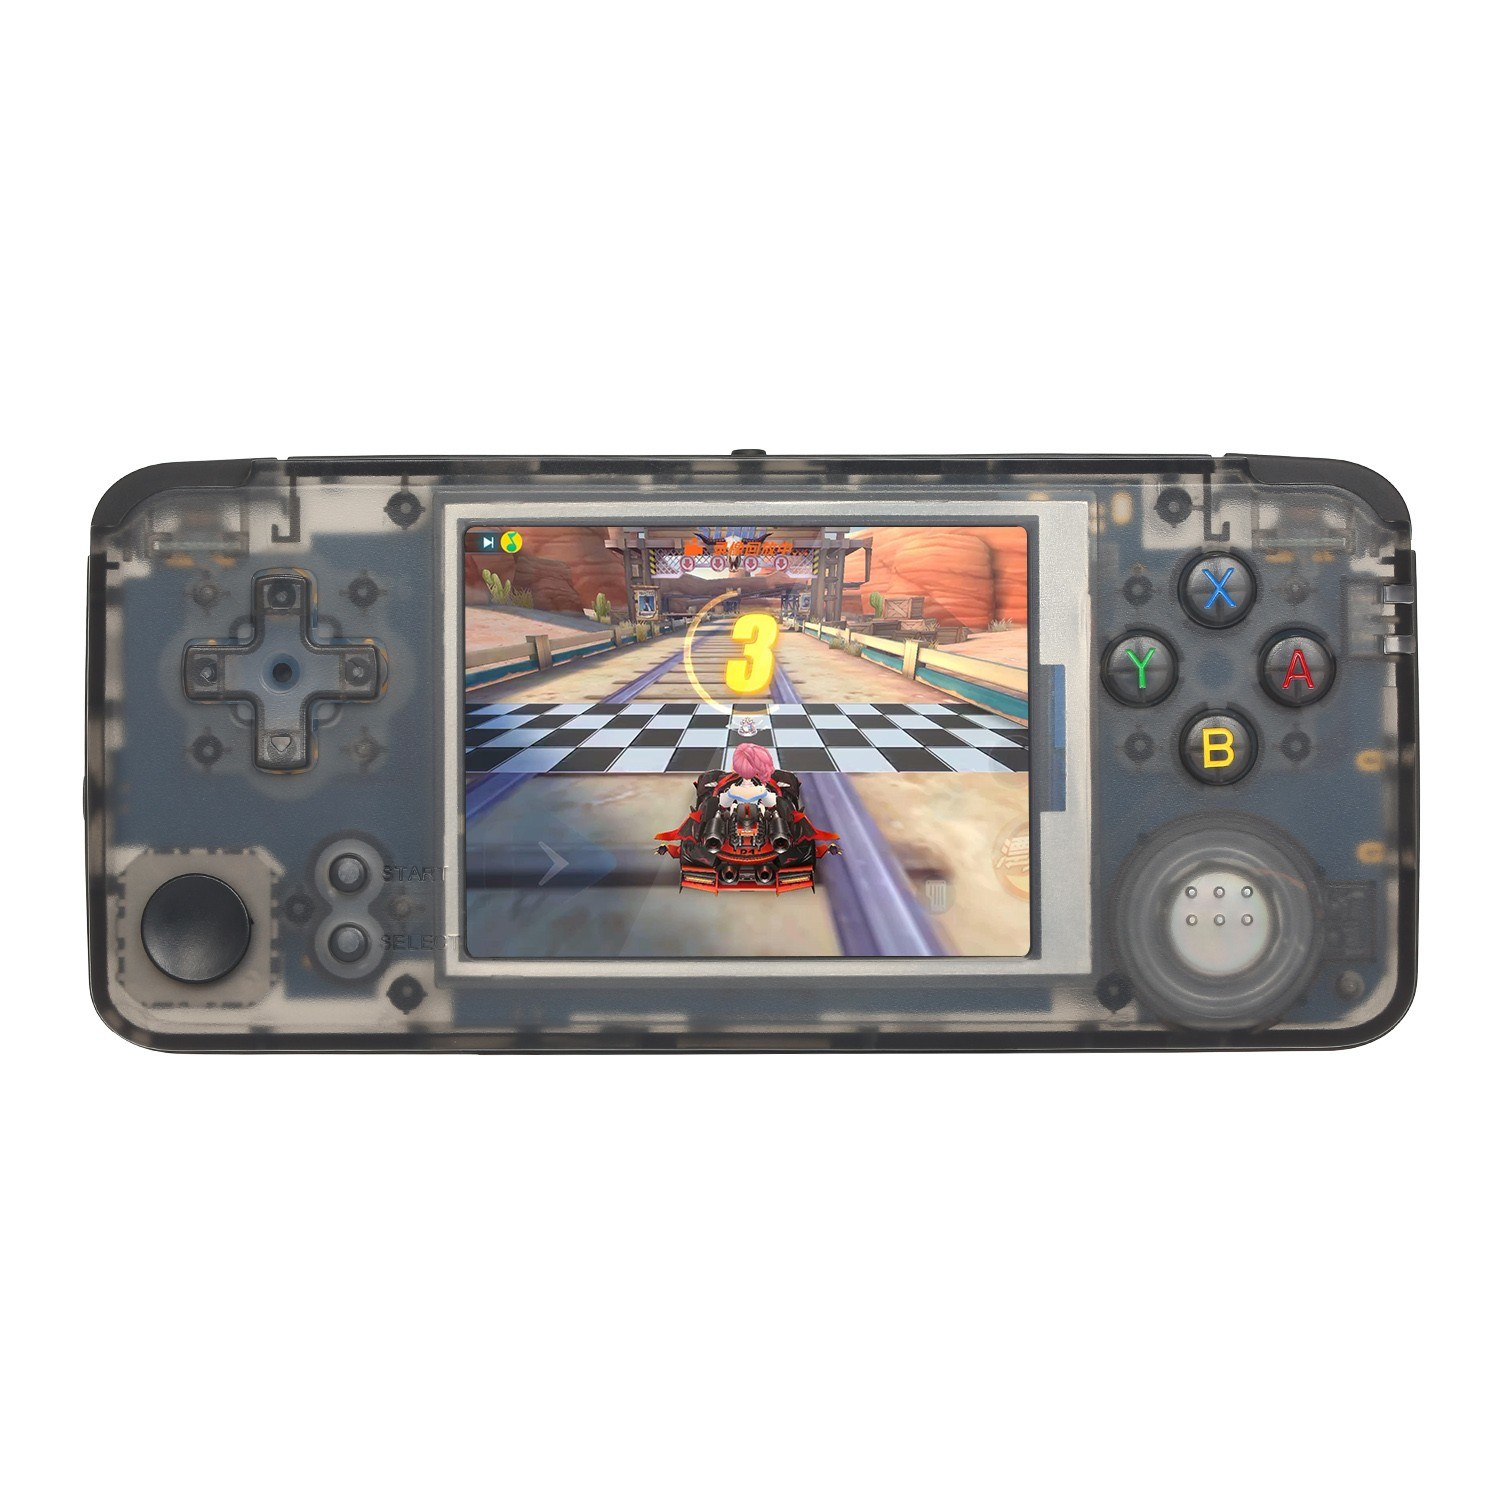 Q9 Handheld Game Console Portable Gaming Machine MP3 Music Player Built-in 3000 Classic Games 1800mAh Battery 3.0 inch IPS Screen AV + 3.5mm Audio Out TF Slot Black